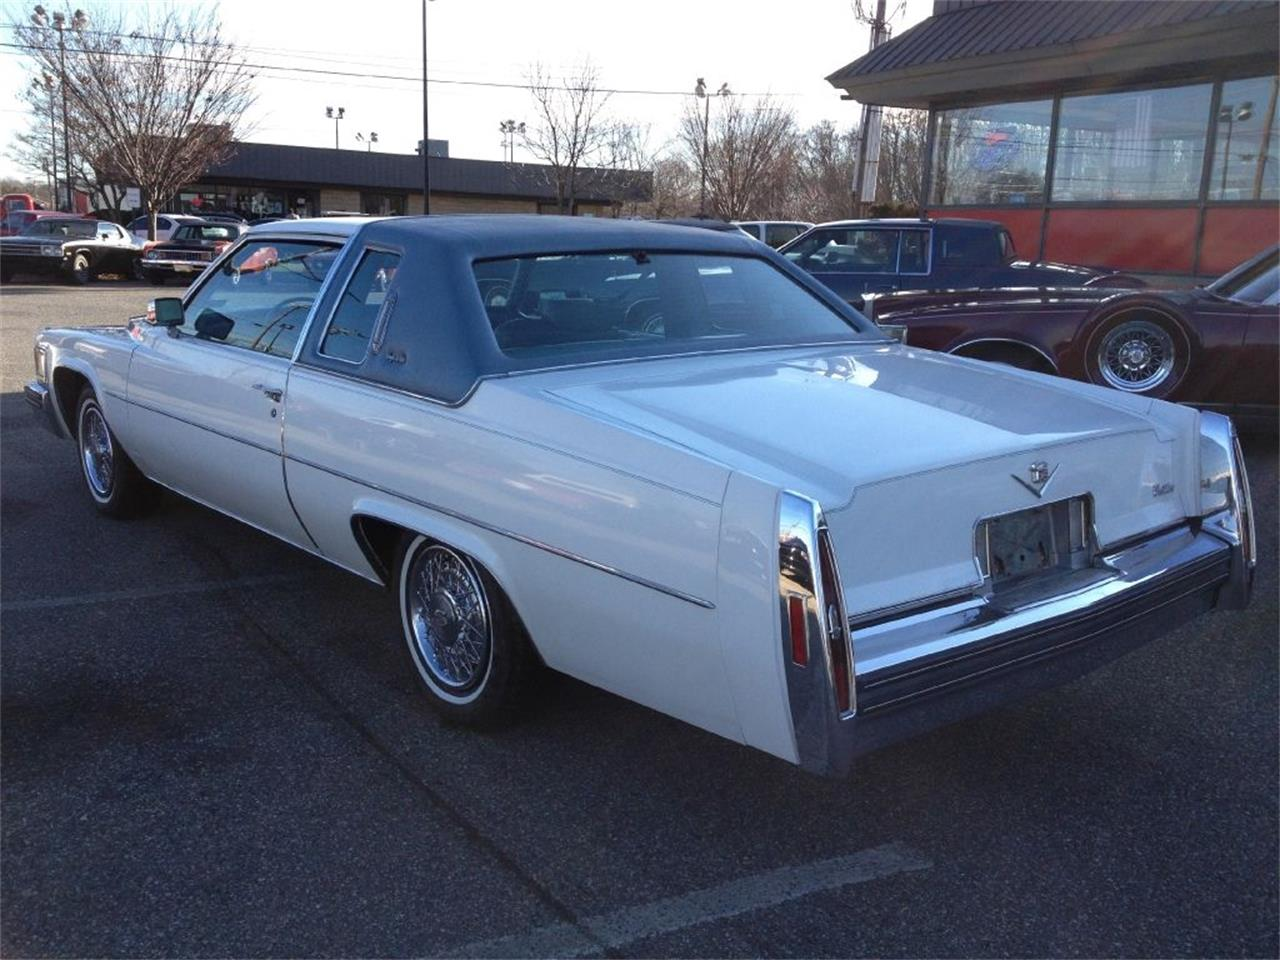 Large Picture of '79 Cadillac DeVille located in Stratford New Jersey - $11,990.00 Offered by Black Tie Classics - OCDQ